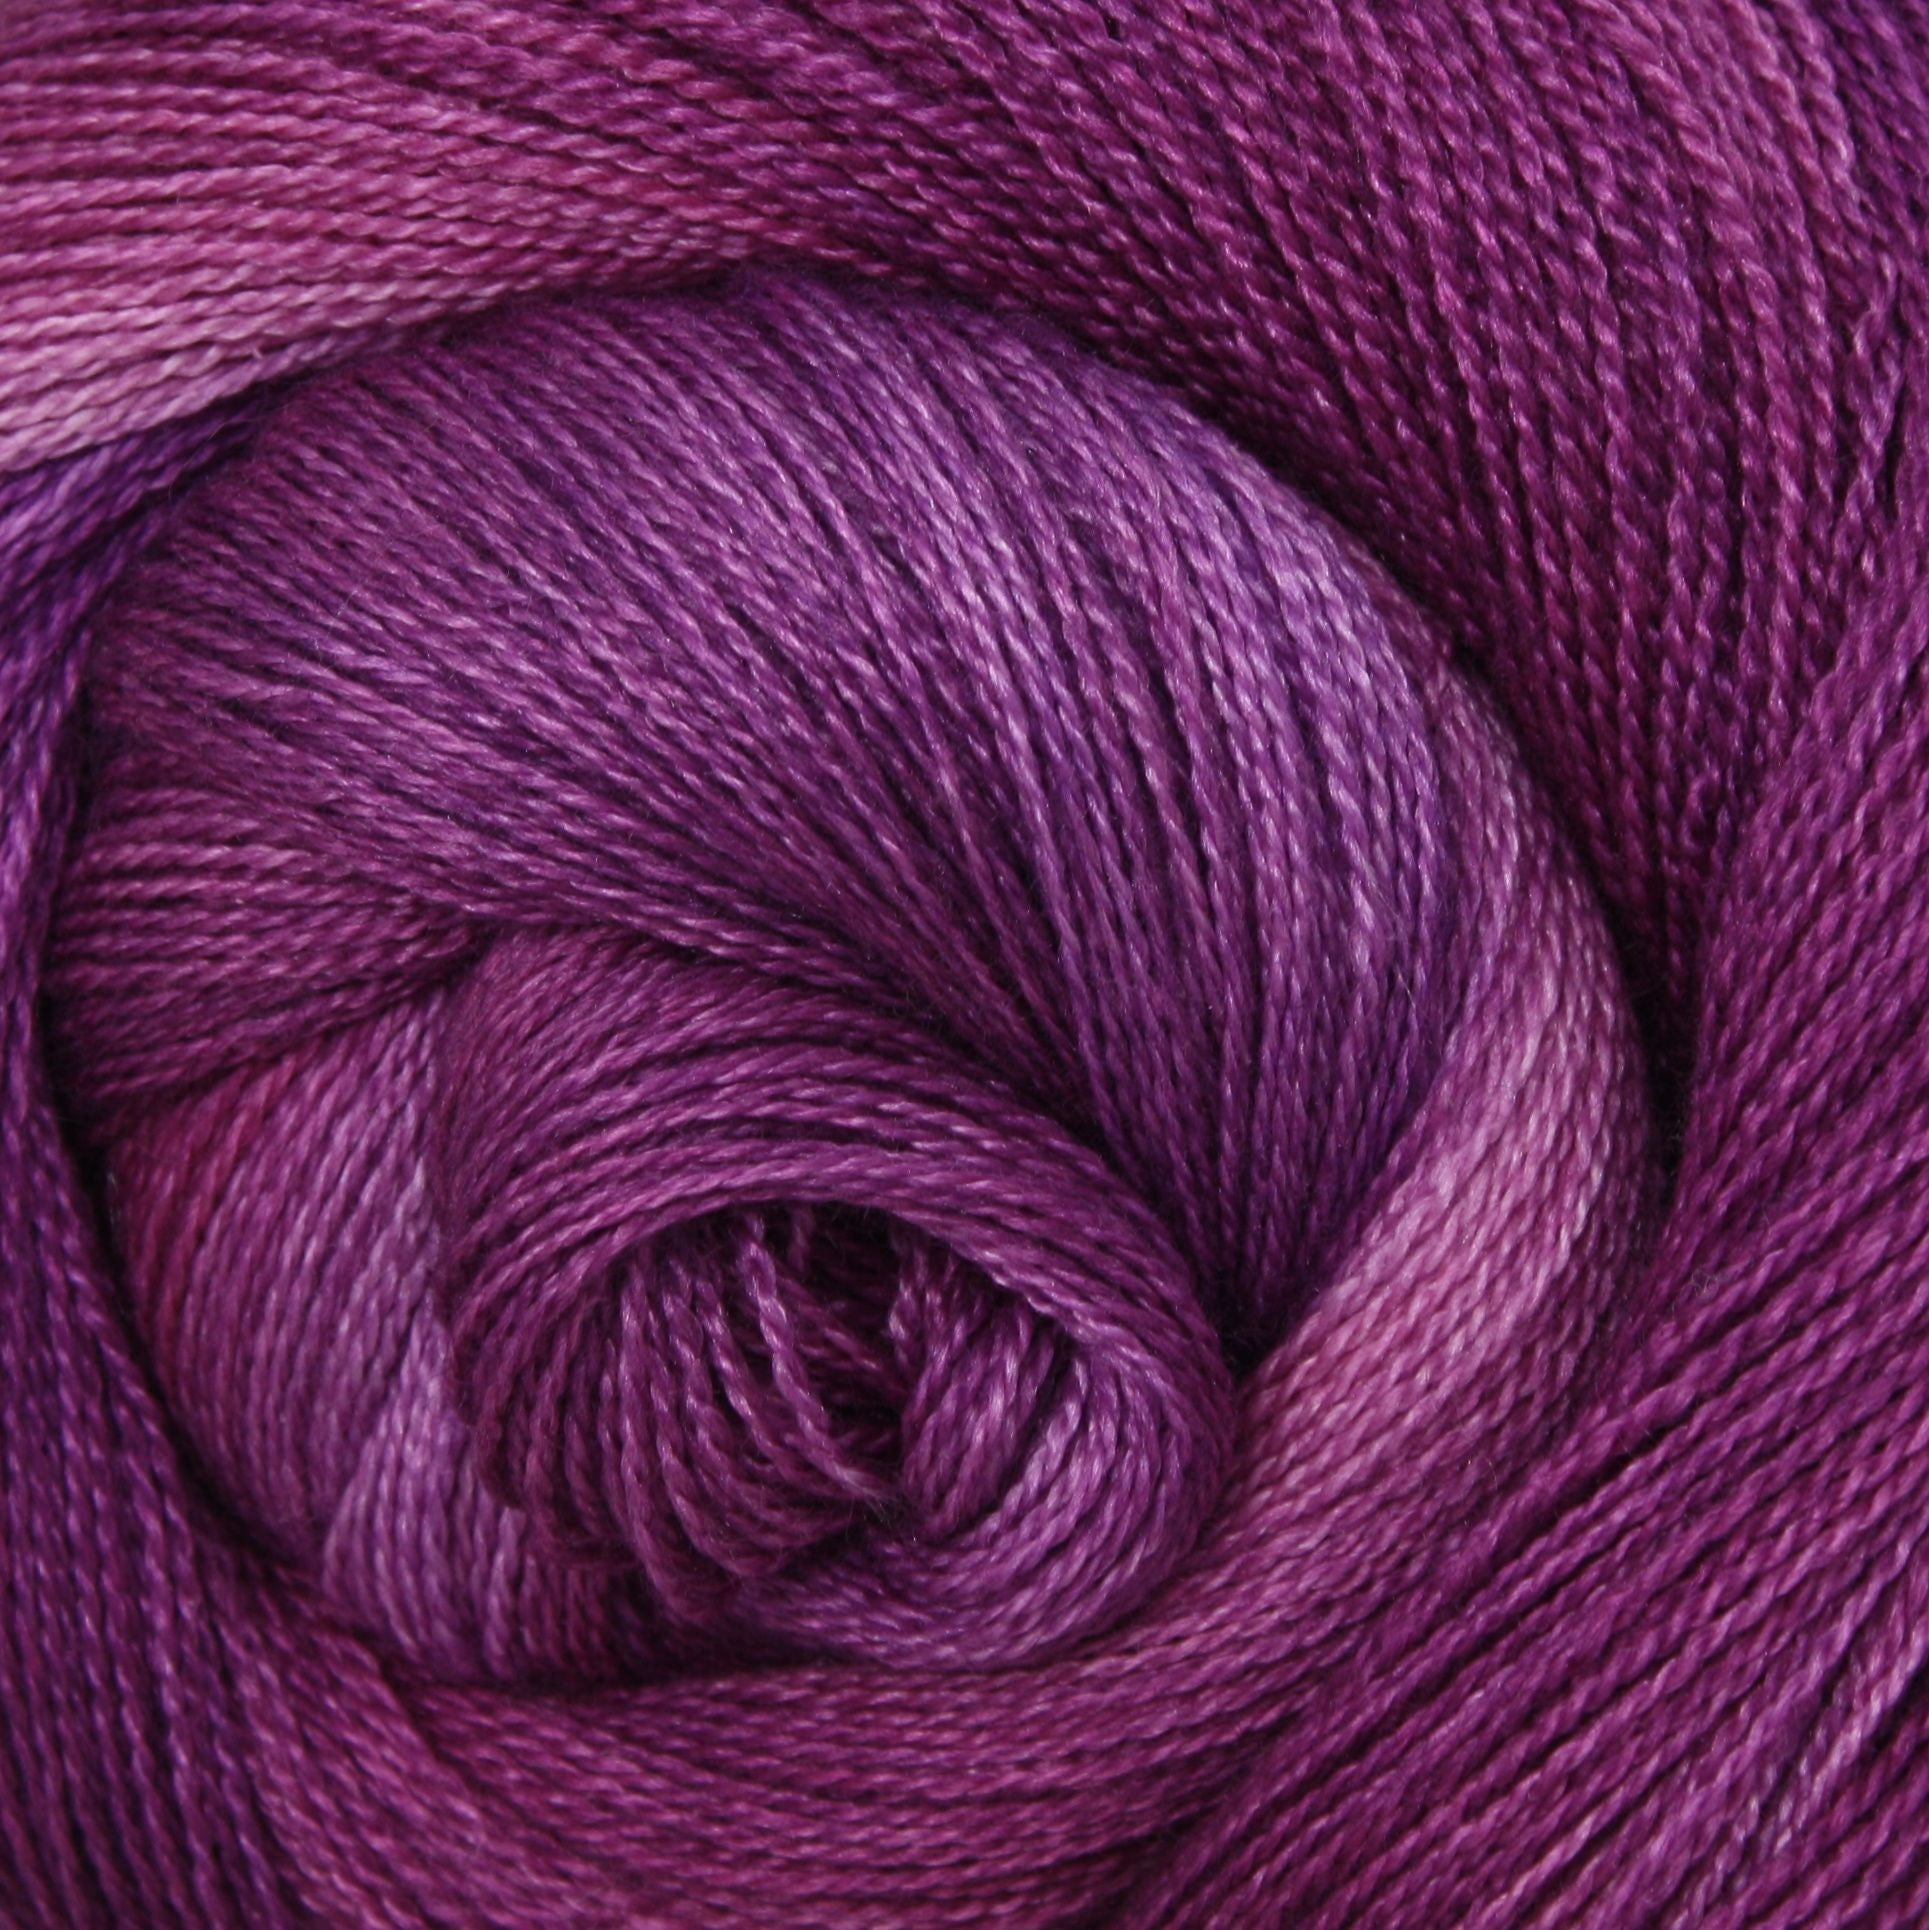 Starbright Yarn | Colorway: Jelly Bean